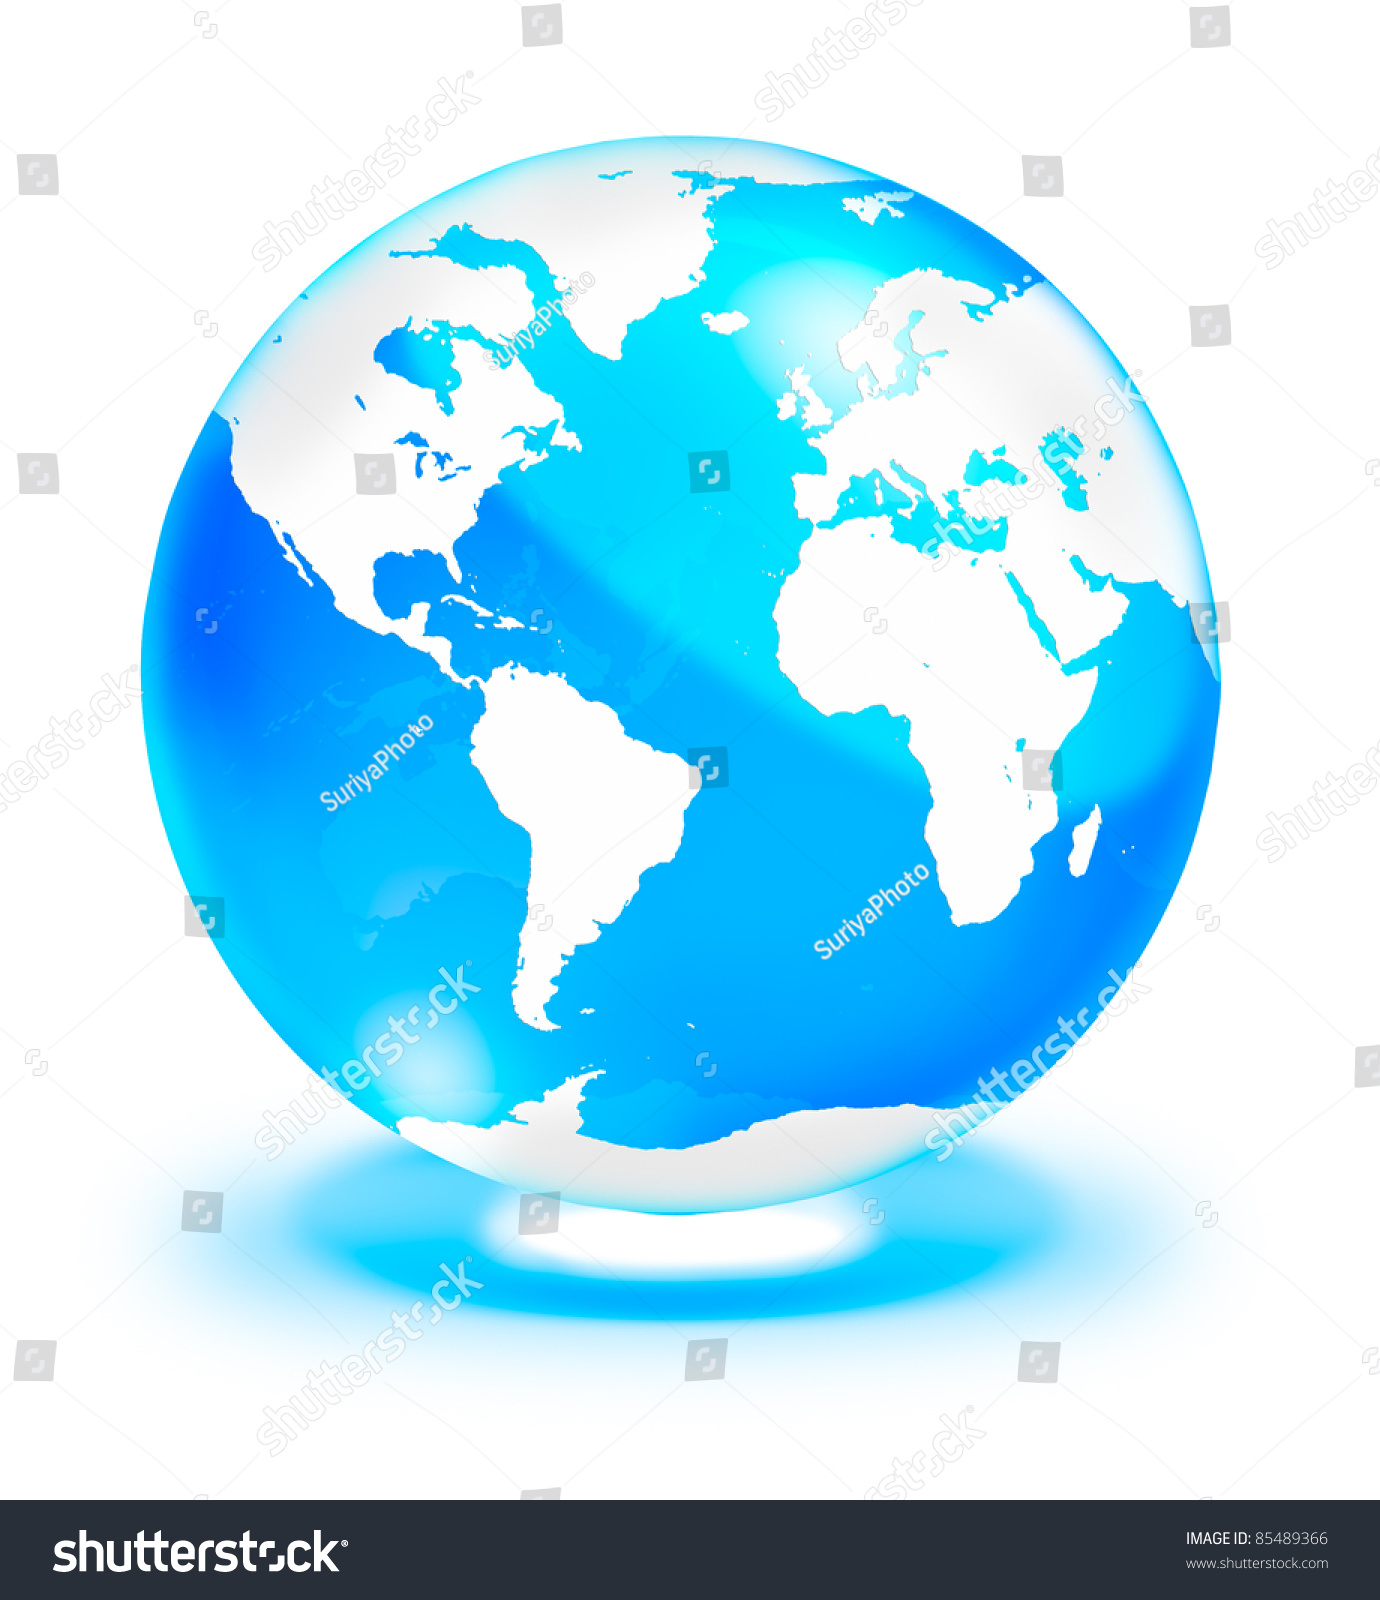 Crystal clear globe world map isolated stock illustration 85489366 crystal clear globe with world map isolated on white background gumiabroncs Choice Image